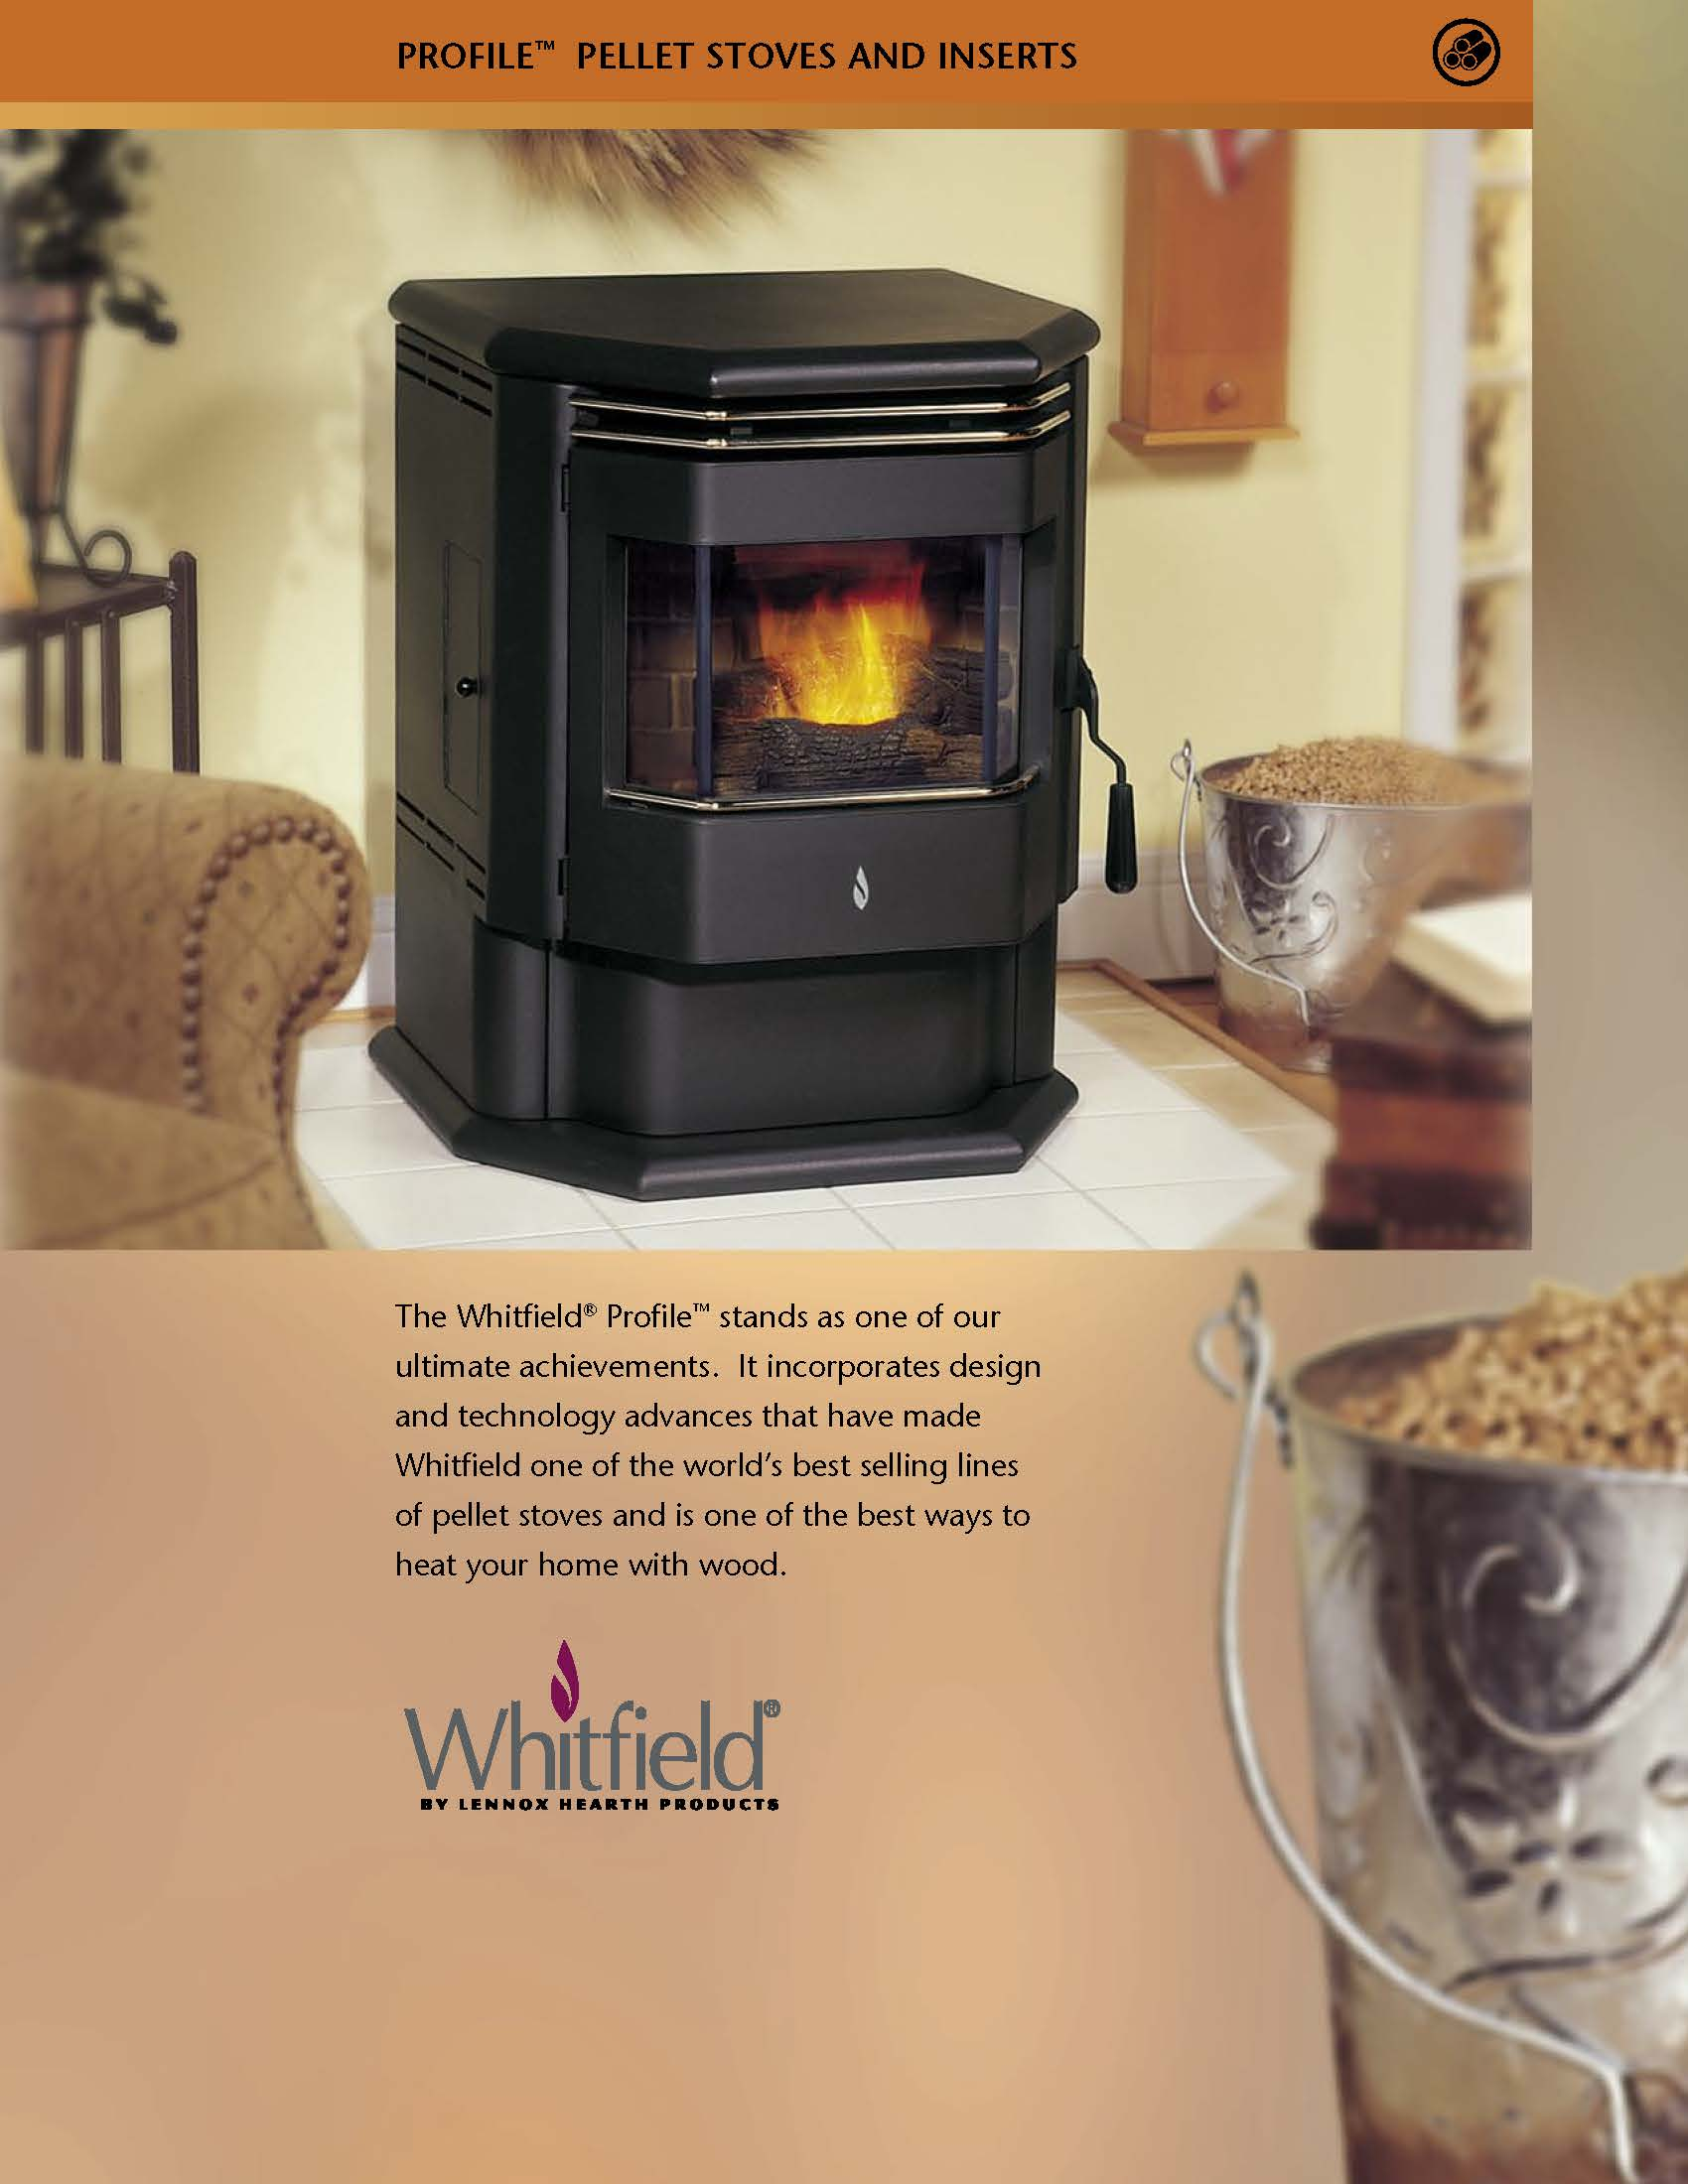 Whitfield Profile 20 30 Pellet Stove Brochure Freestanding